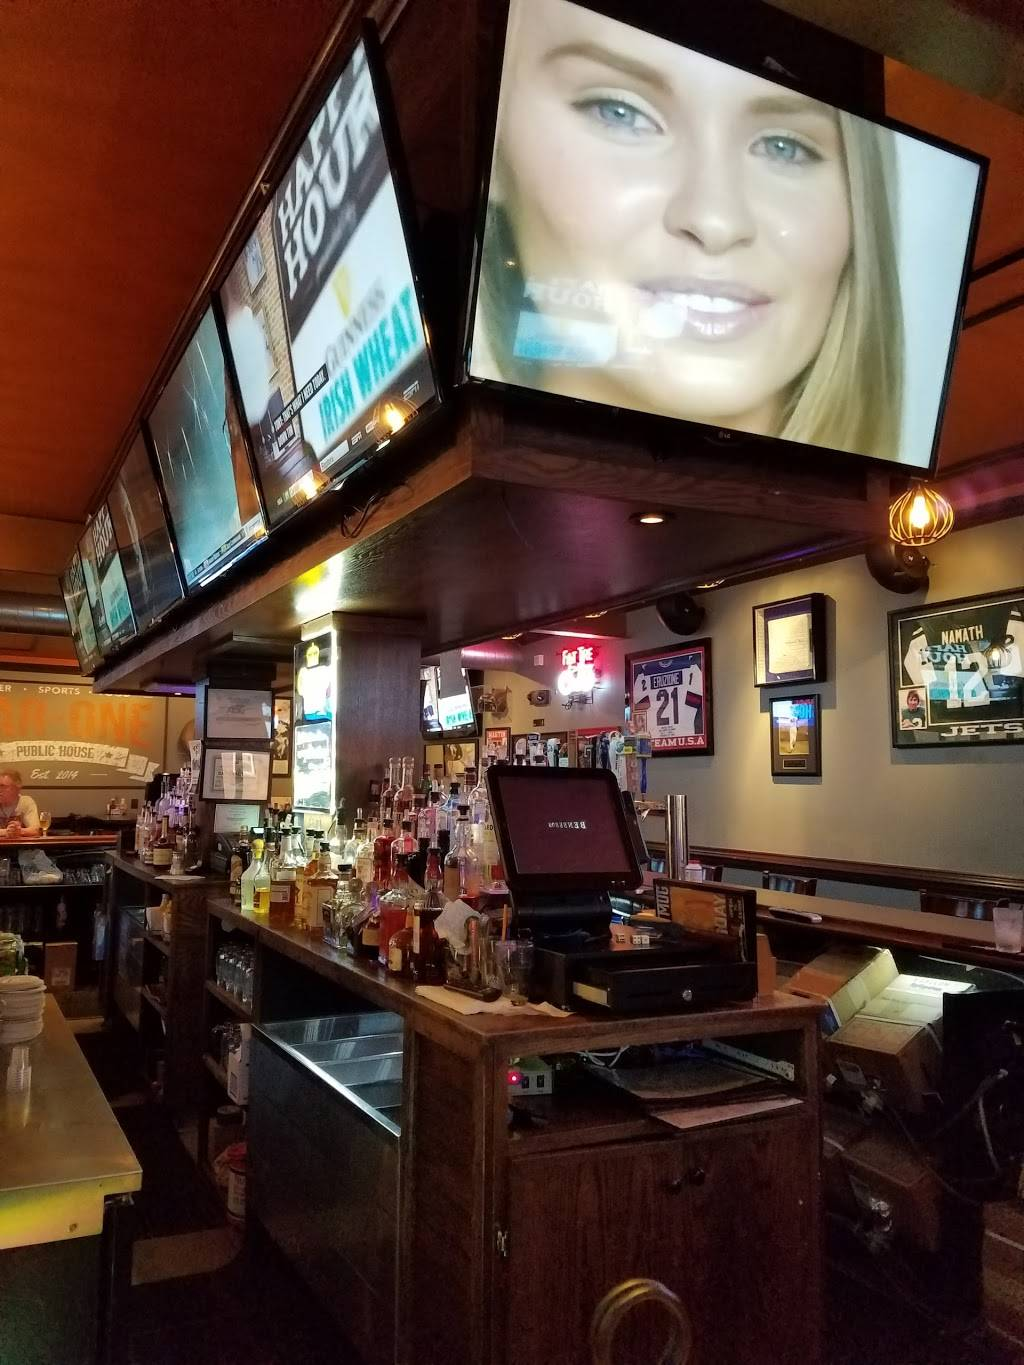 Bar One Public House | restaurant | 560 Fairview Ave, Fairview, NJ 07022, USA | 2019412271 OR +1 201-941-2271